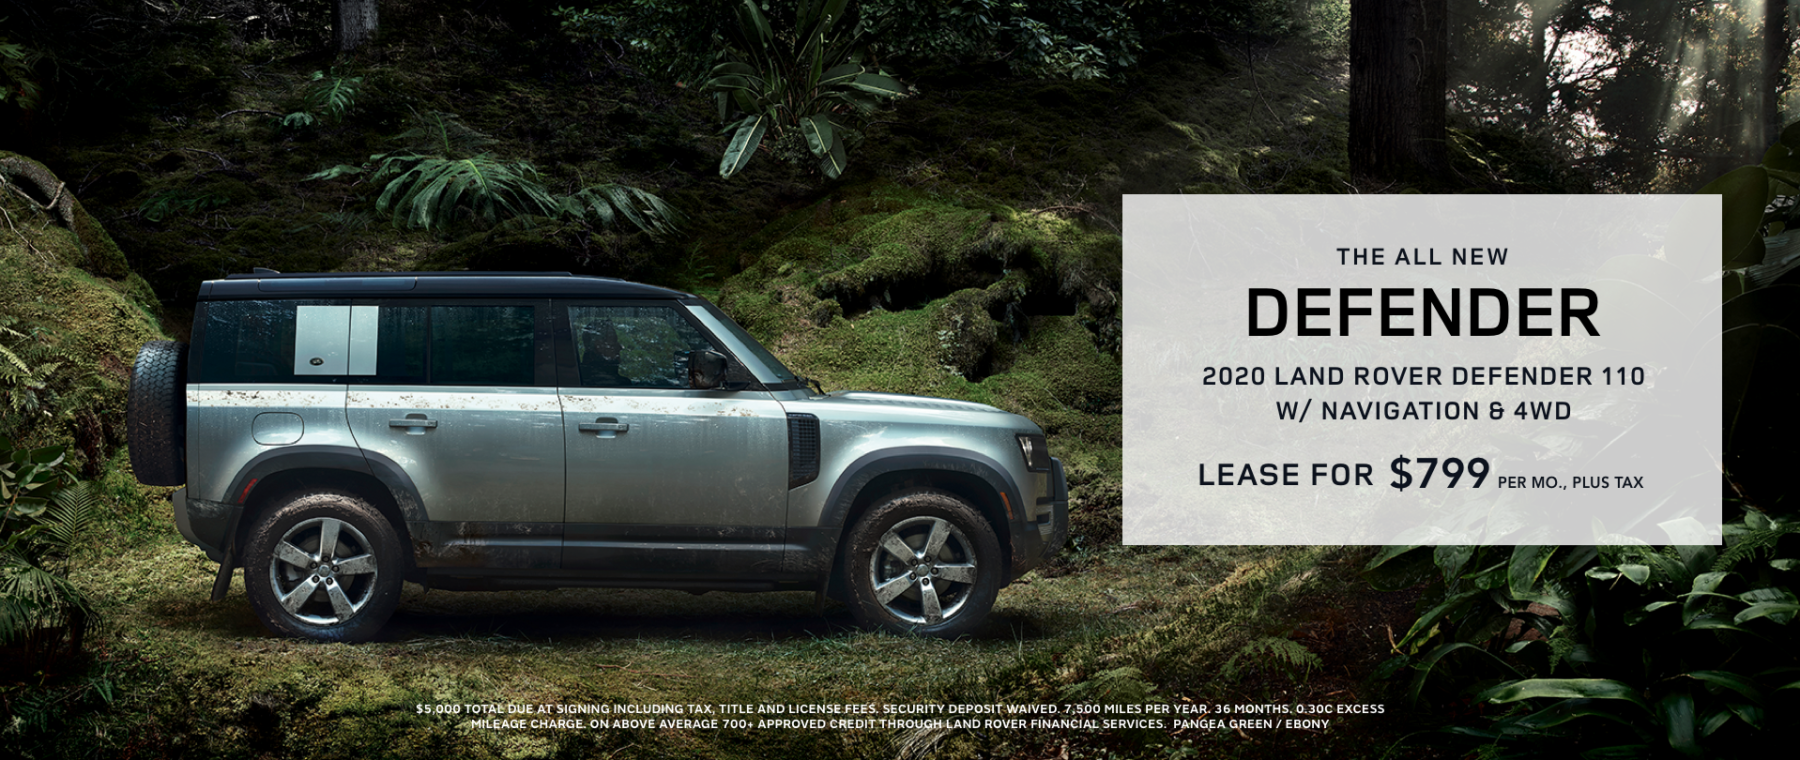 LRNB-All-New-Defender-Banner-4